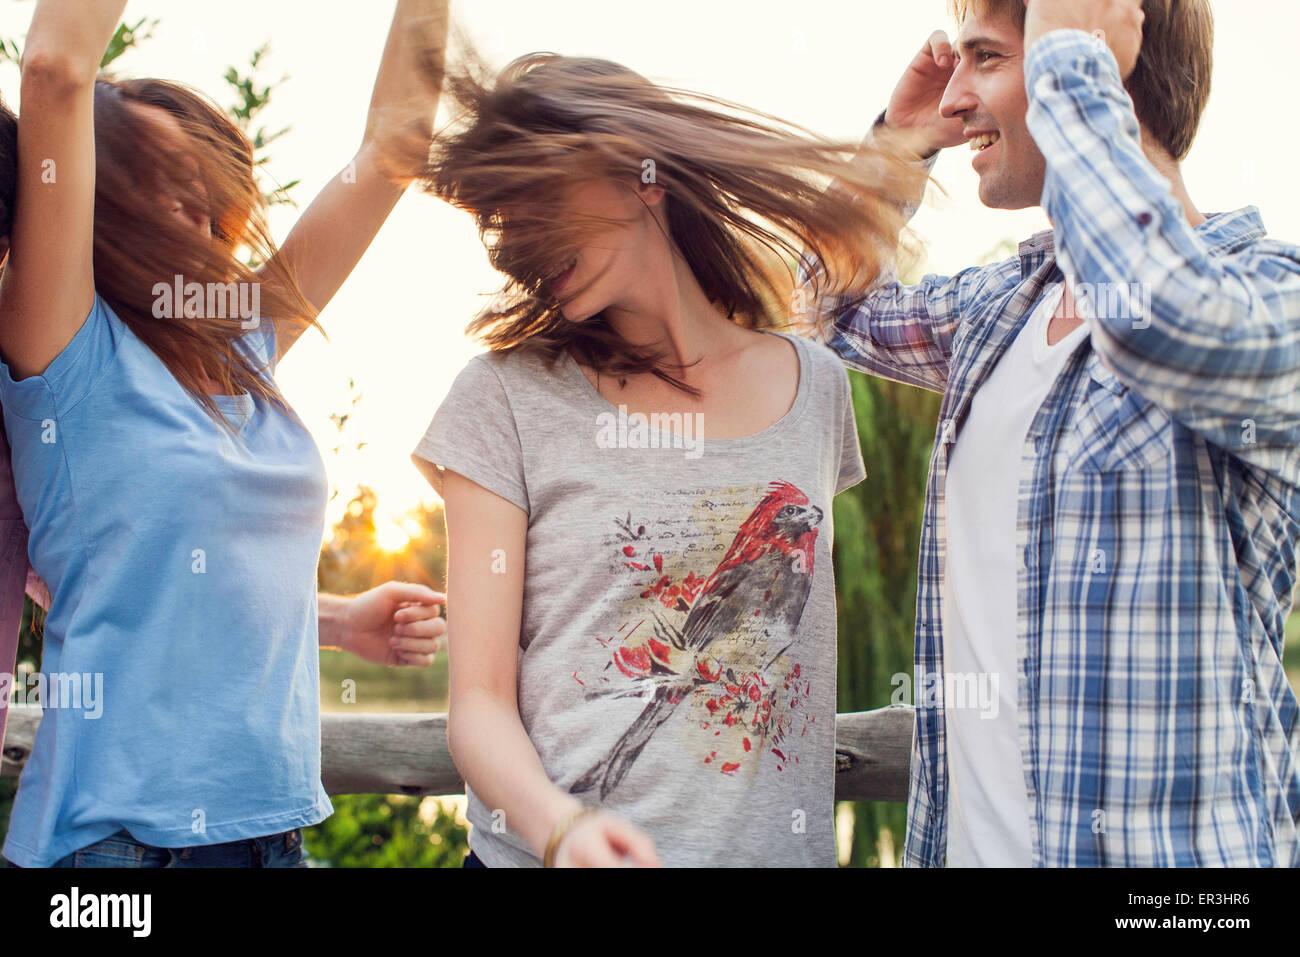 Friends partying together outdoors - Stock Image